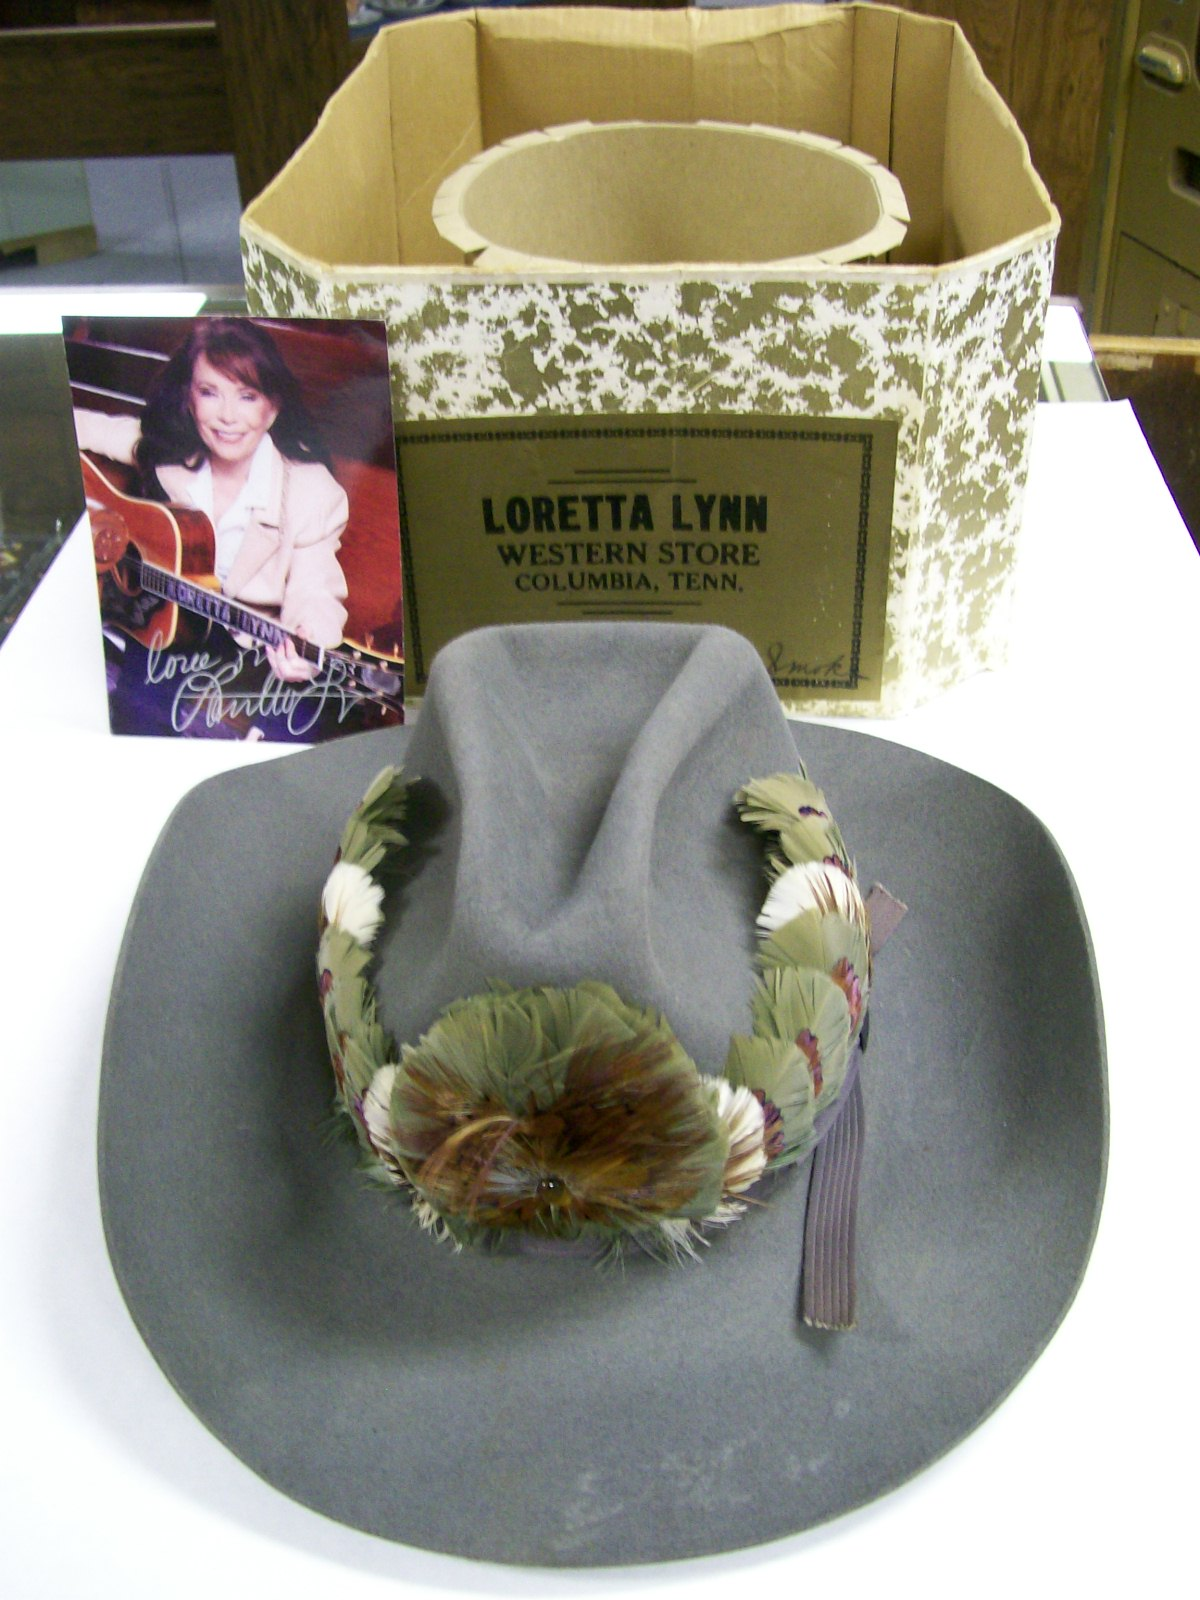 Loretta Lynn Personal Hat from a long time ago. Original box